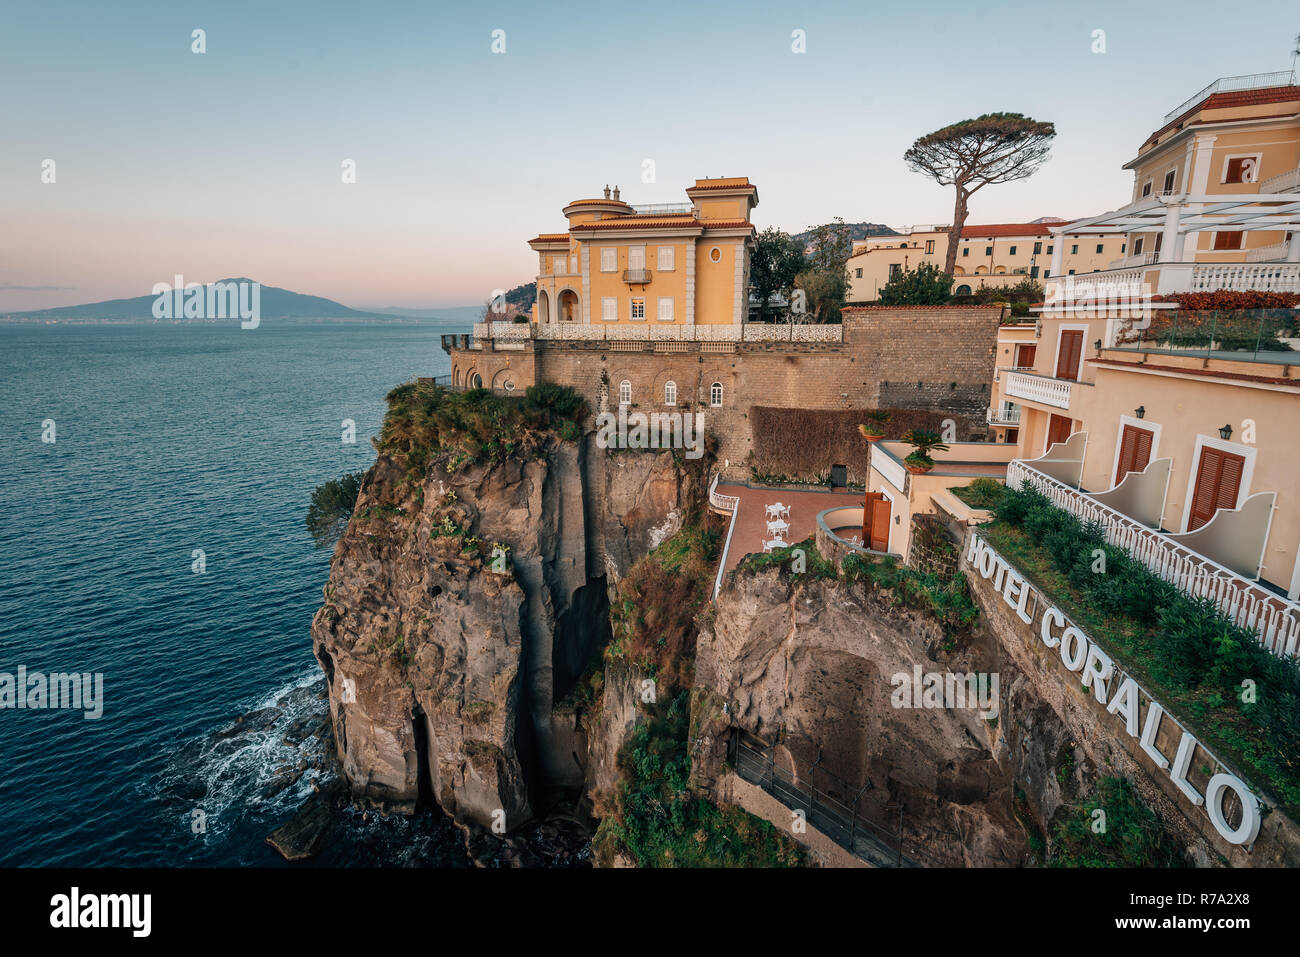 The Hotel Corallo And Cliffs At Sunset In Sorrento